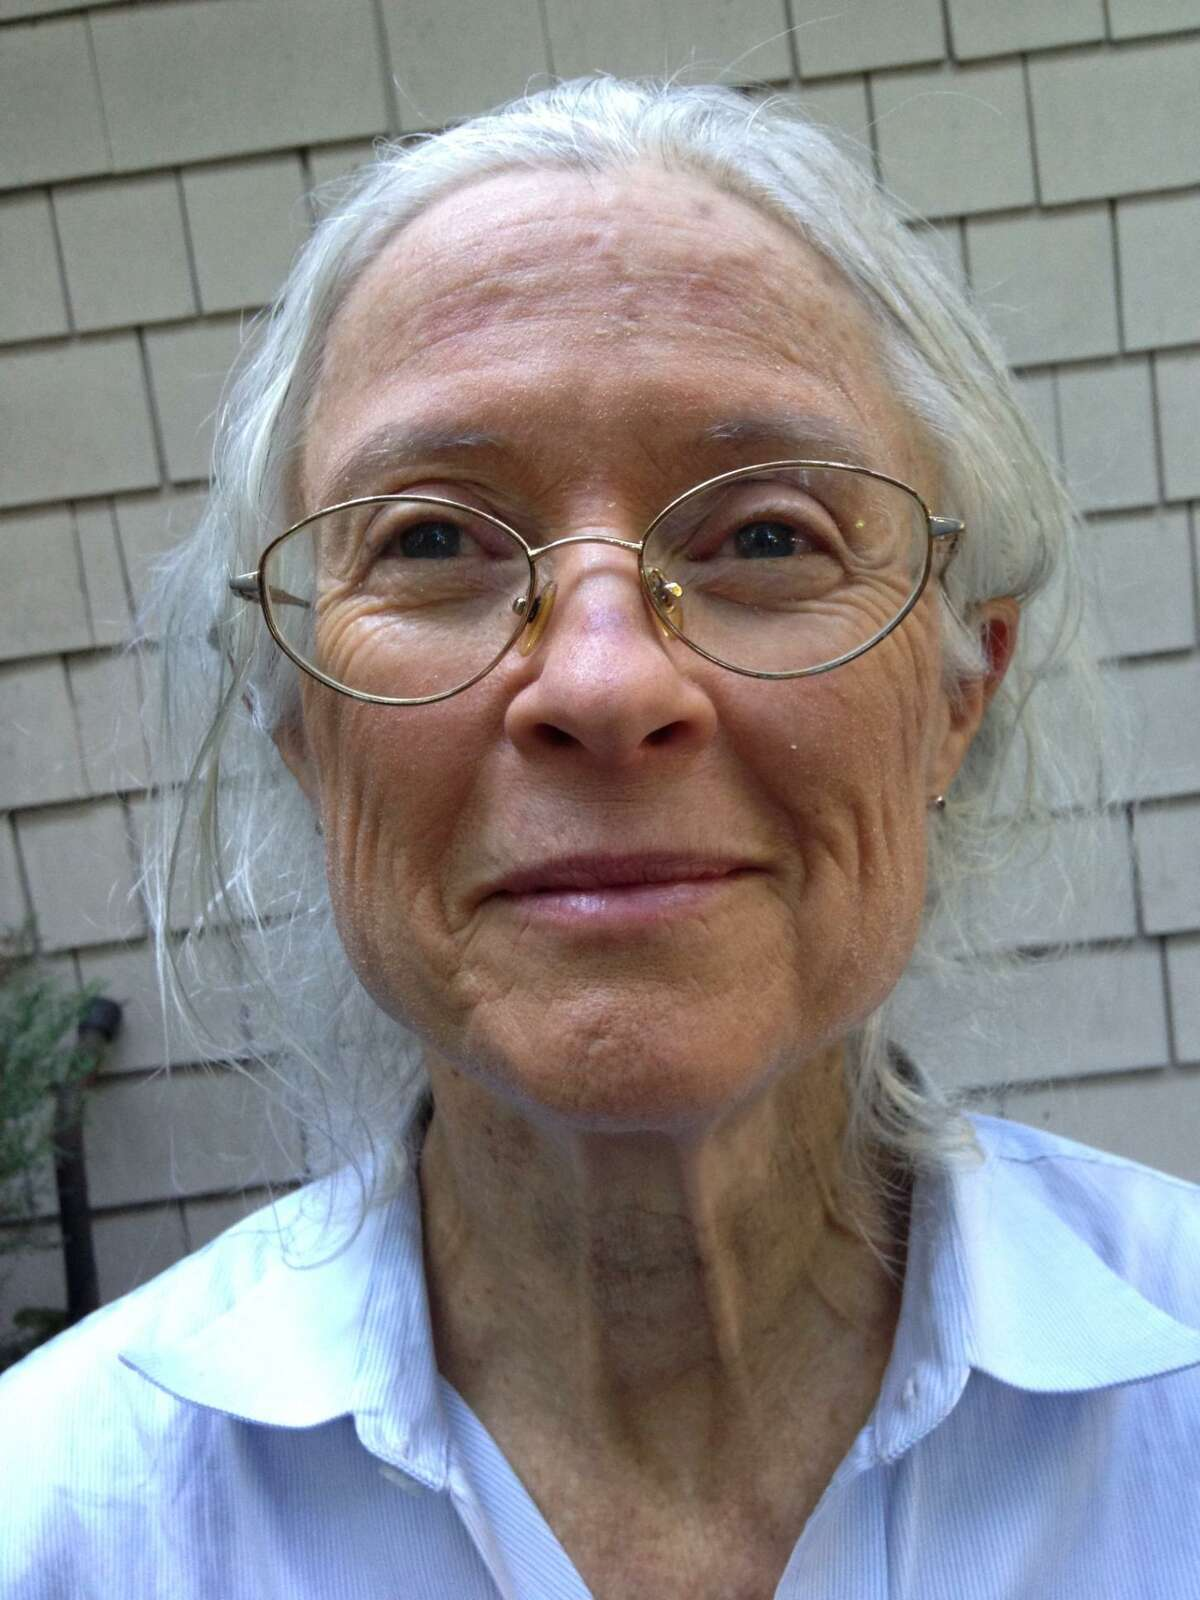 Police are looking for Joanne Scott, who suffers from Alzheimer's disease and who went missing from her home in Palo Alto on Monday.